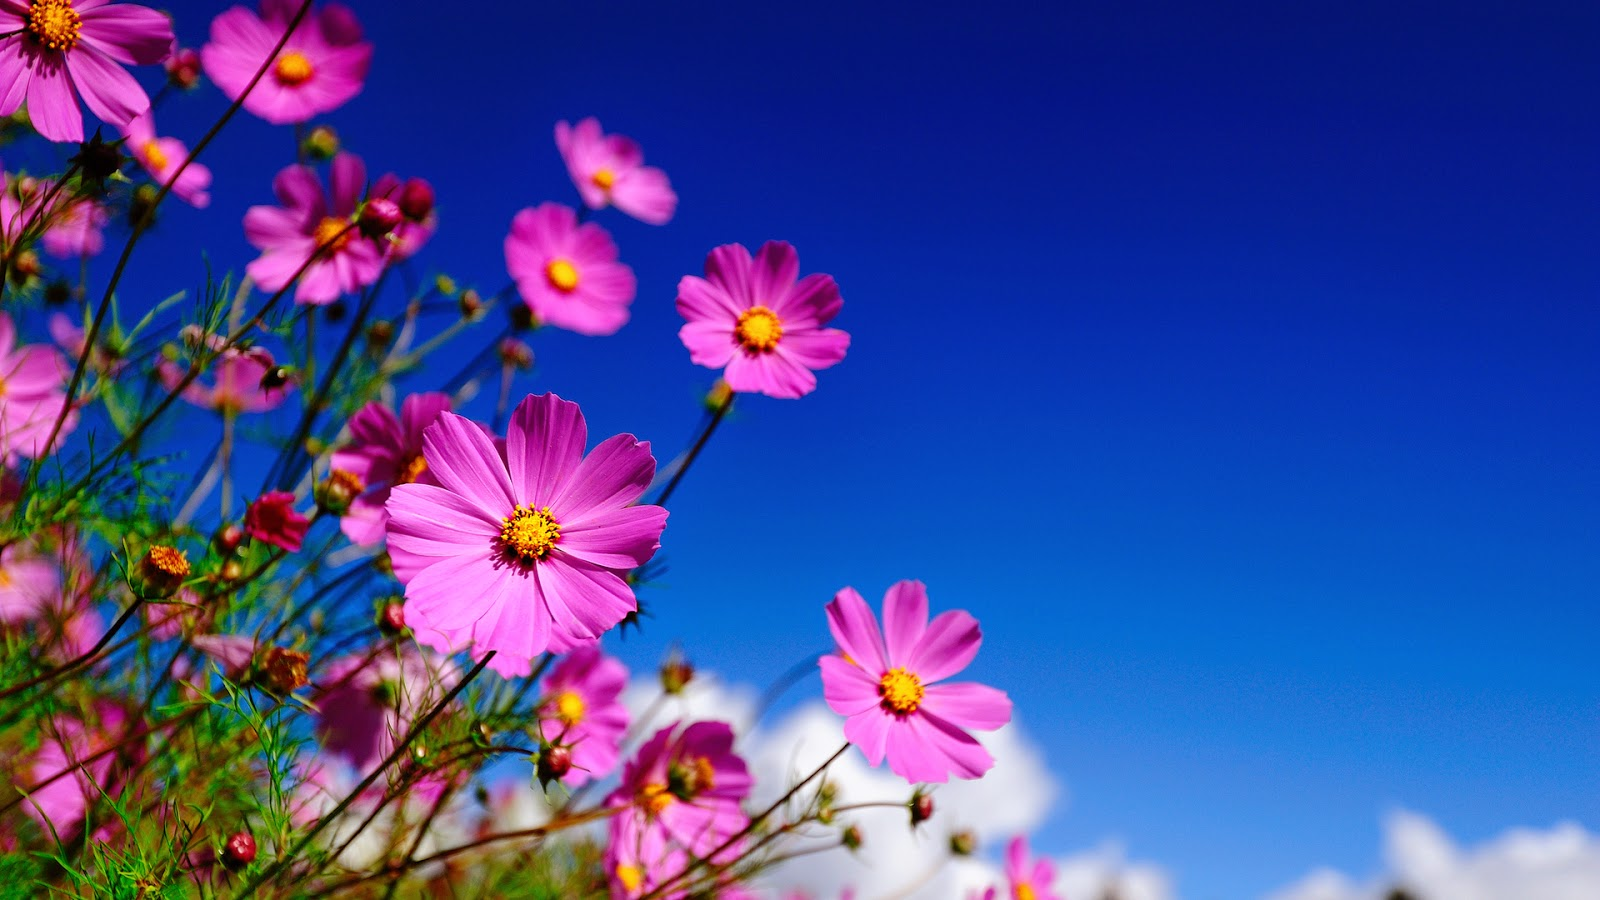 7 Nice Flowers Wallpaper Desktop Background Full Screen 1600x900